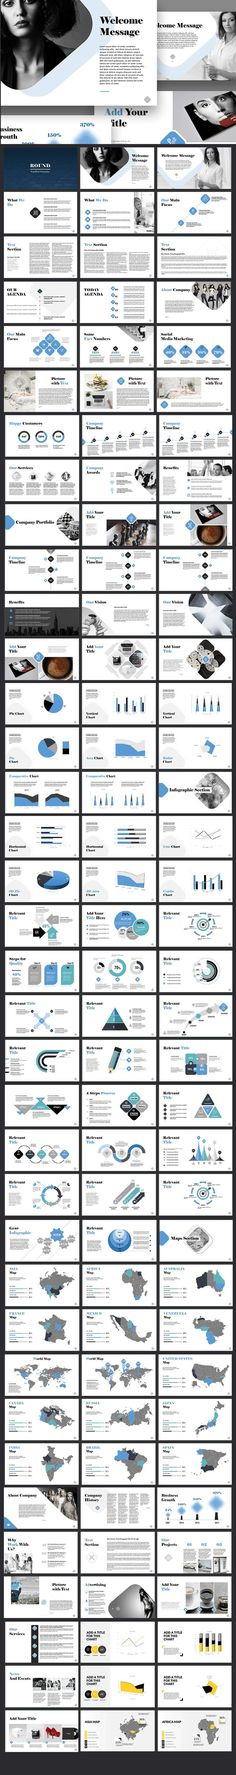 27 Best Music And Movie Powerpoint Templates Images On Pinterest In